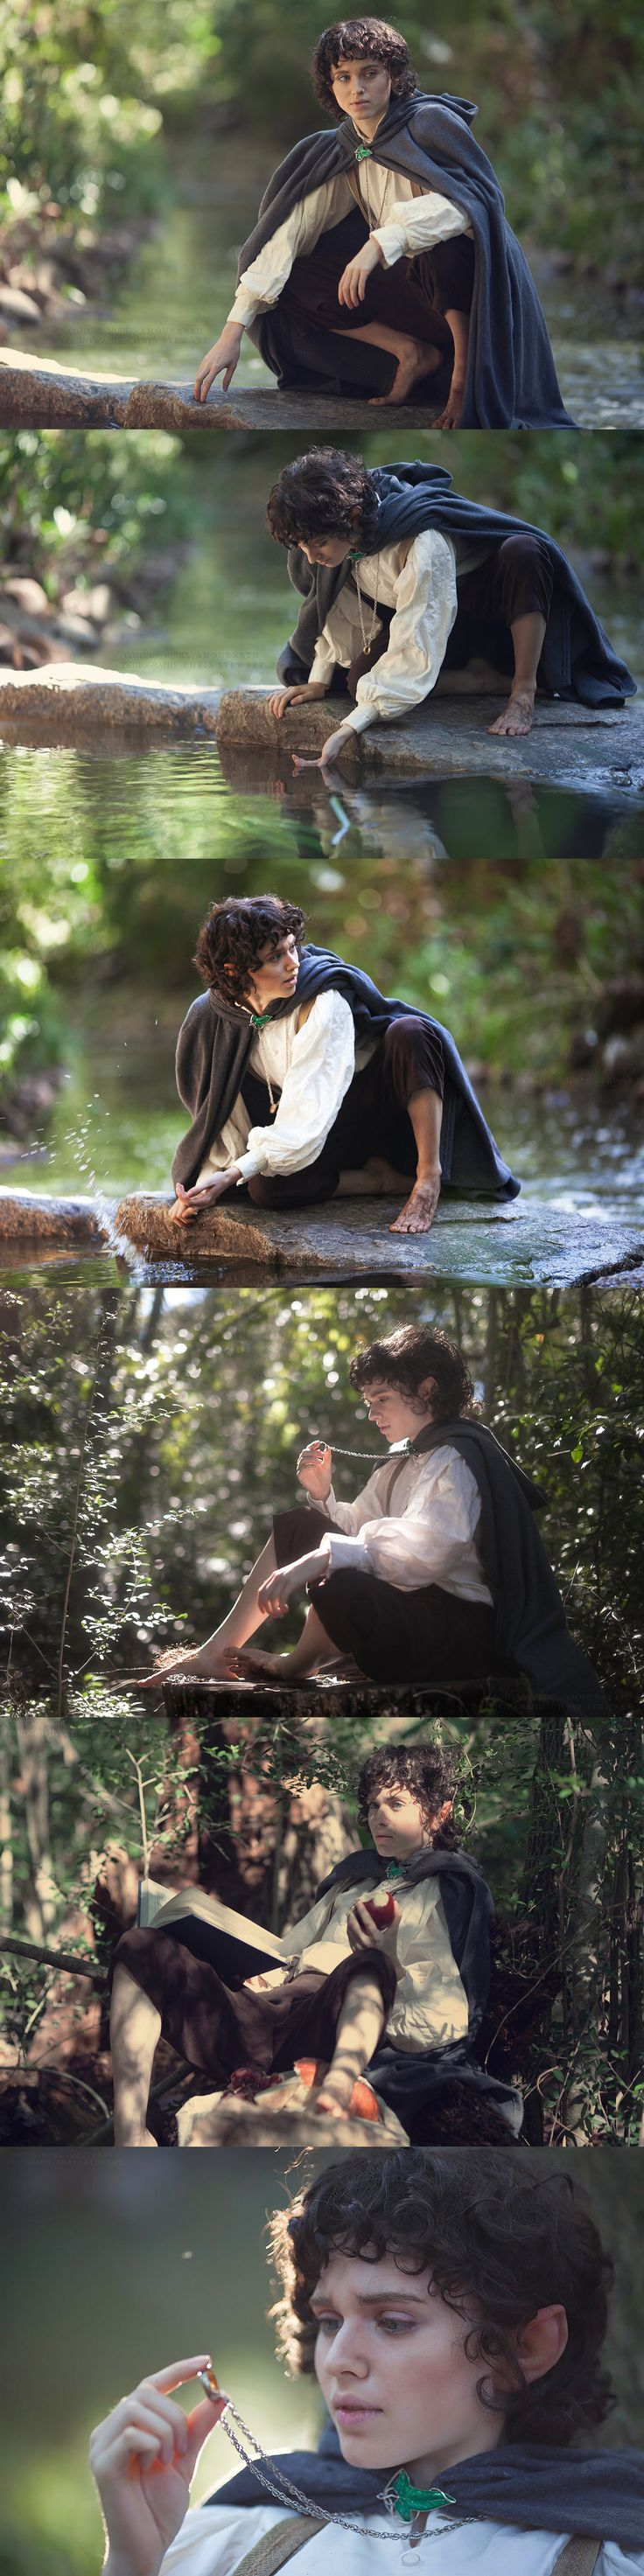 Frodo Baggins cosplay--- am I the only one who is extremely impressed with this?!?